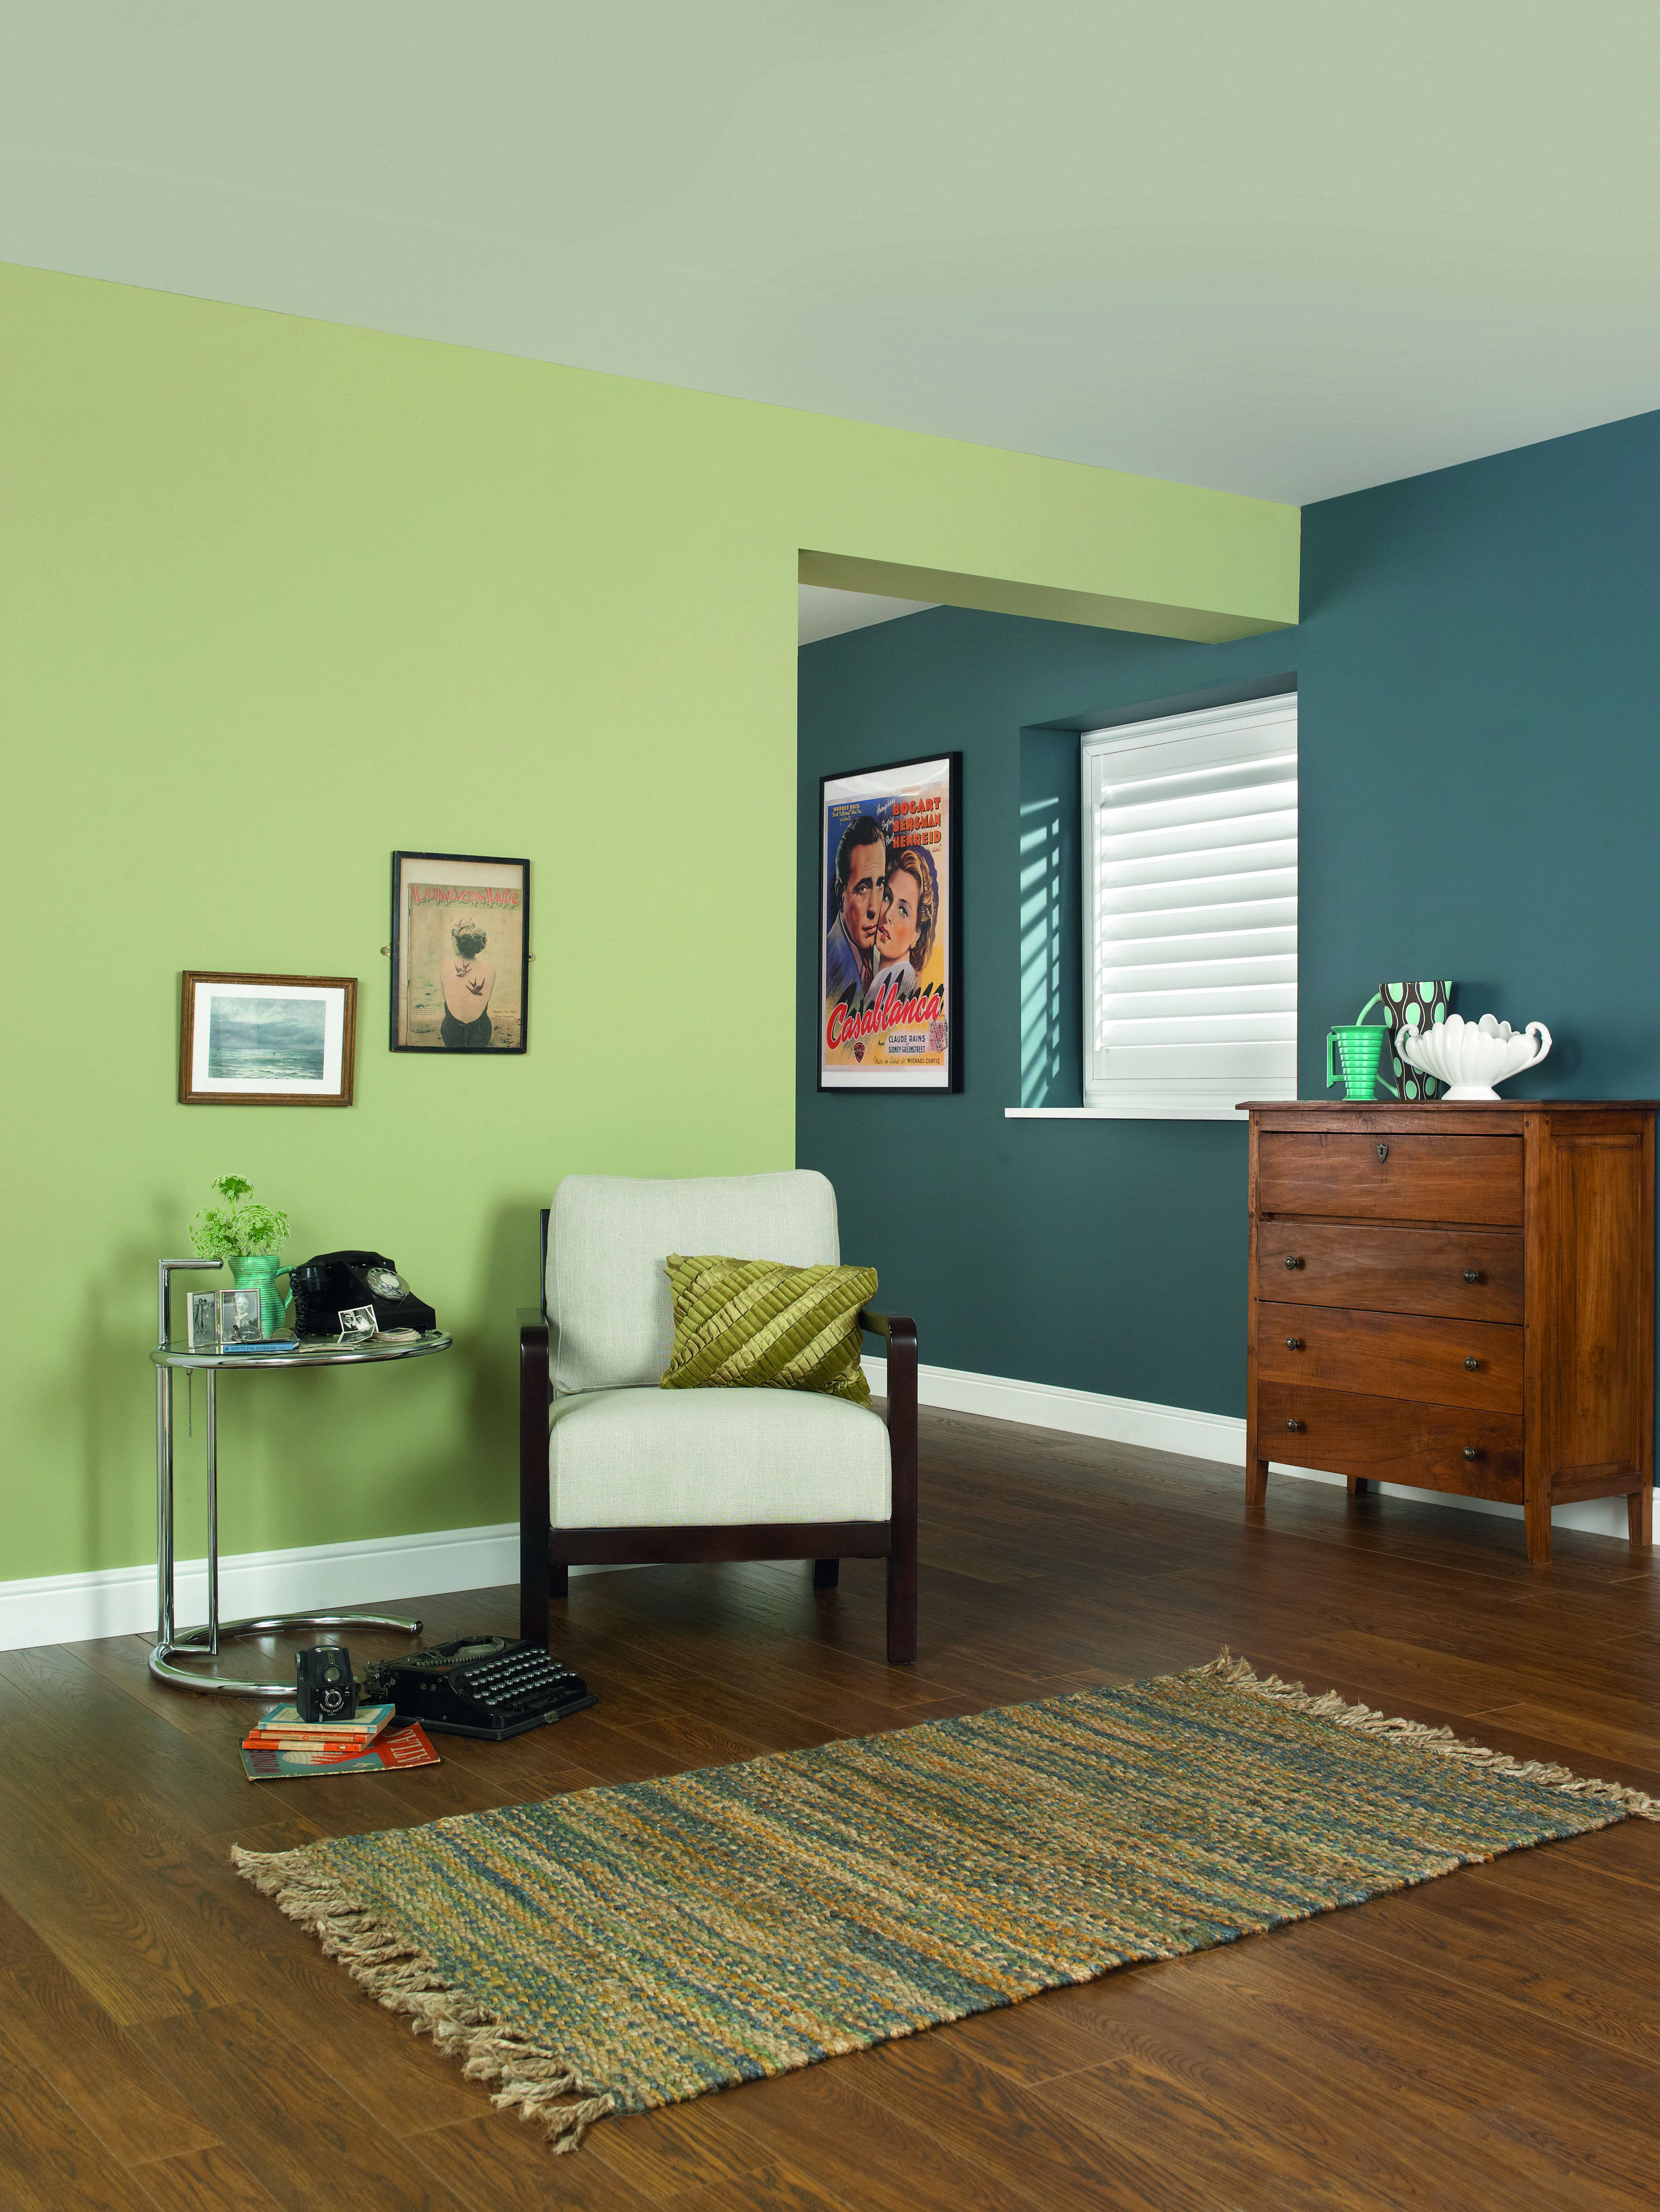 Rooms: Natural Green Tones Will Brighten Up Any Room